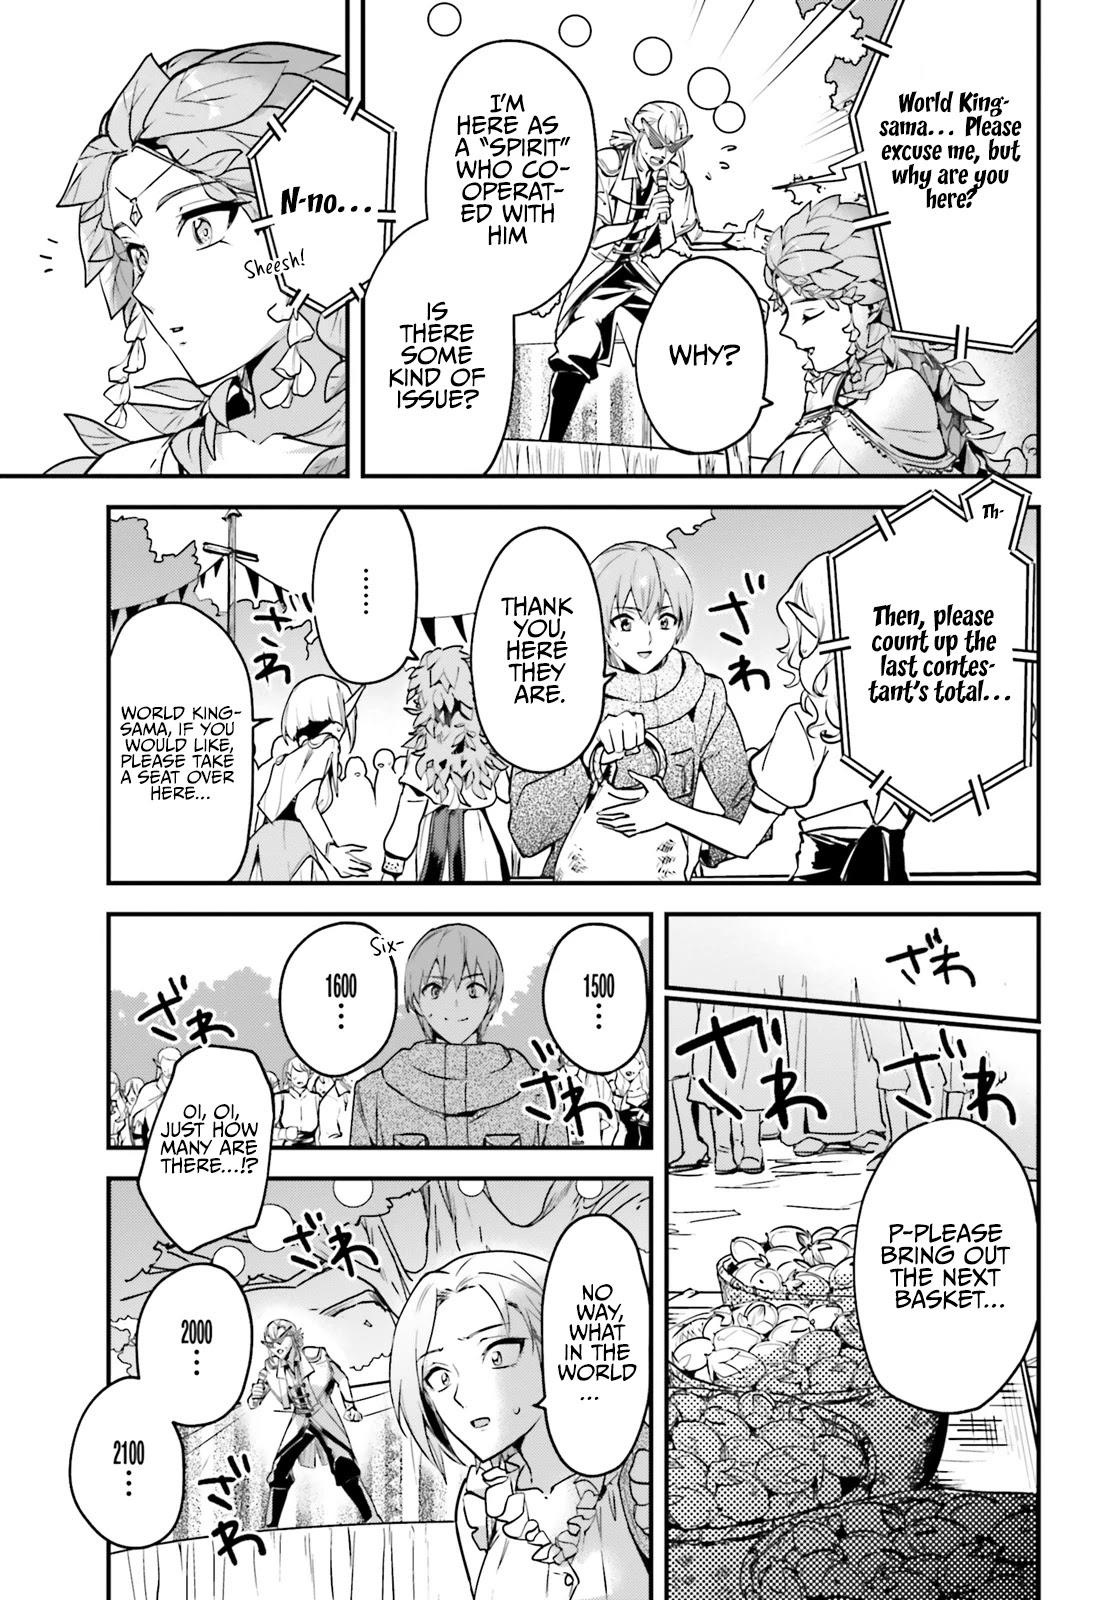 I Was Caught Up In A Hero Summoning, But That World Is At Peace Chapter 26 page 11 - Mangakakalots.com